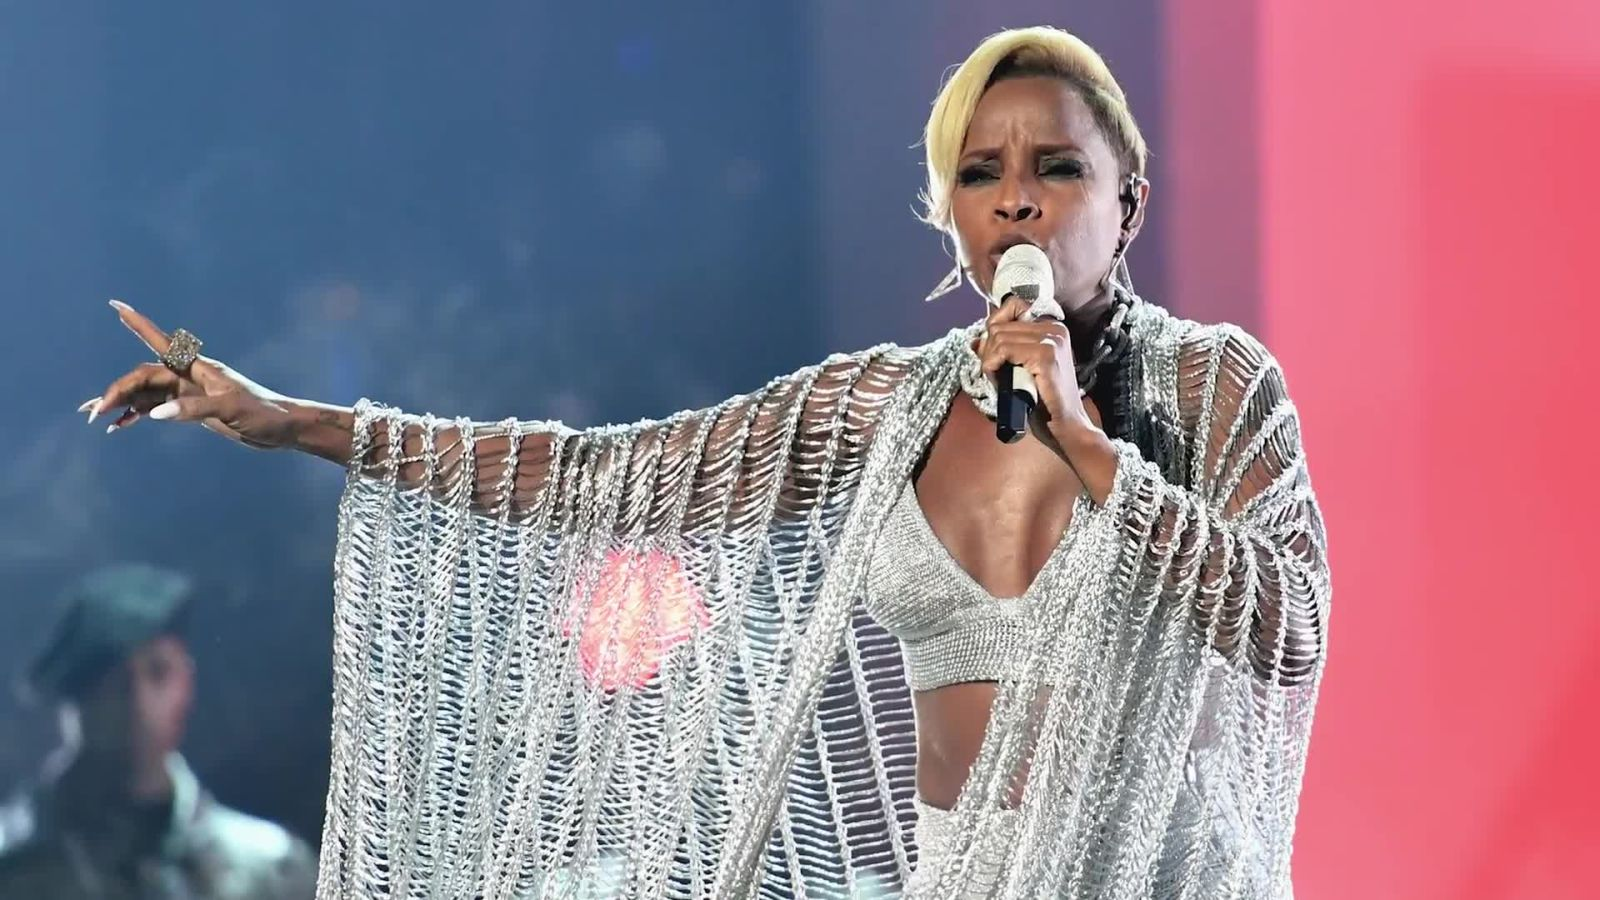 Mary J. Blige, the Queen of Hip-Hop Soul, Examines Her Life in Looks